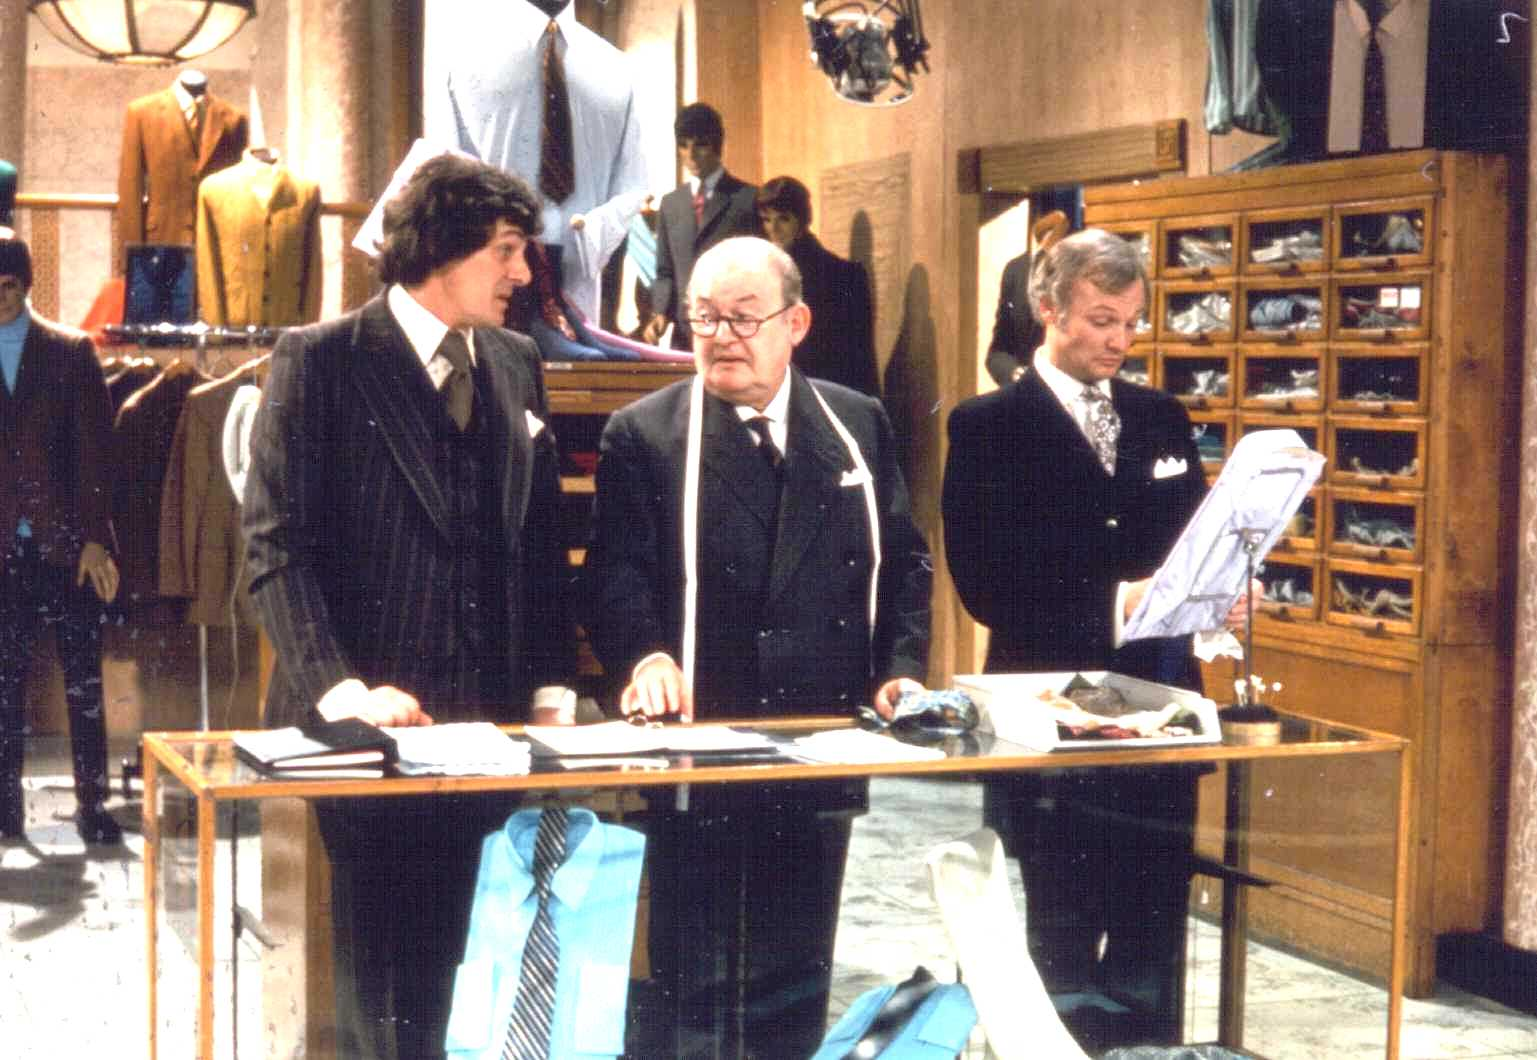 Photo credit: BBC's 'Are You Being Served' via Wikipedia